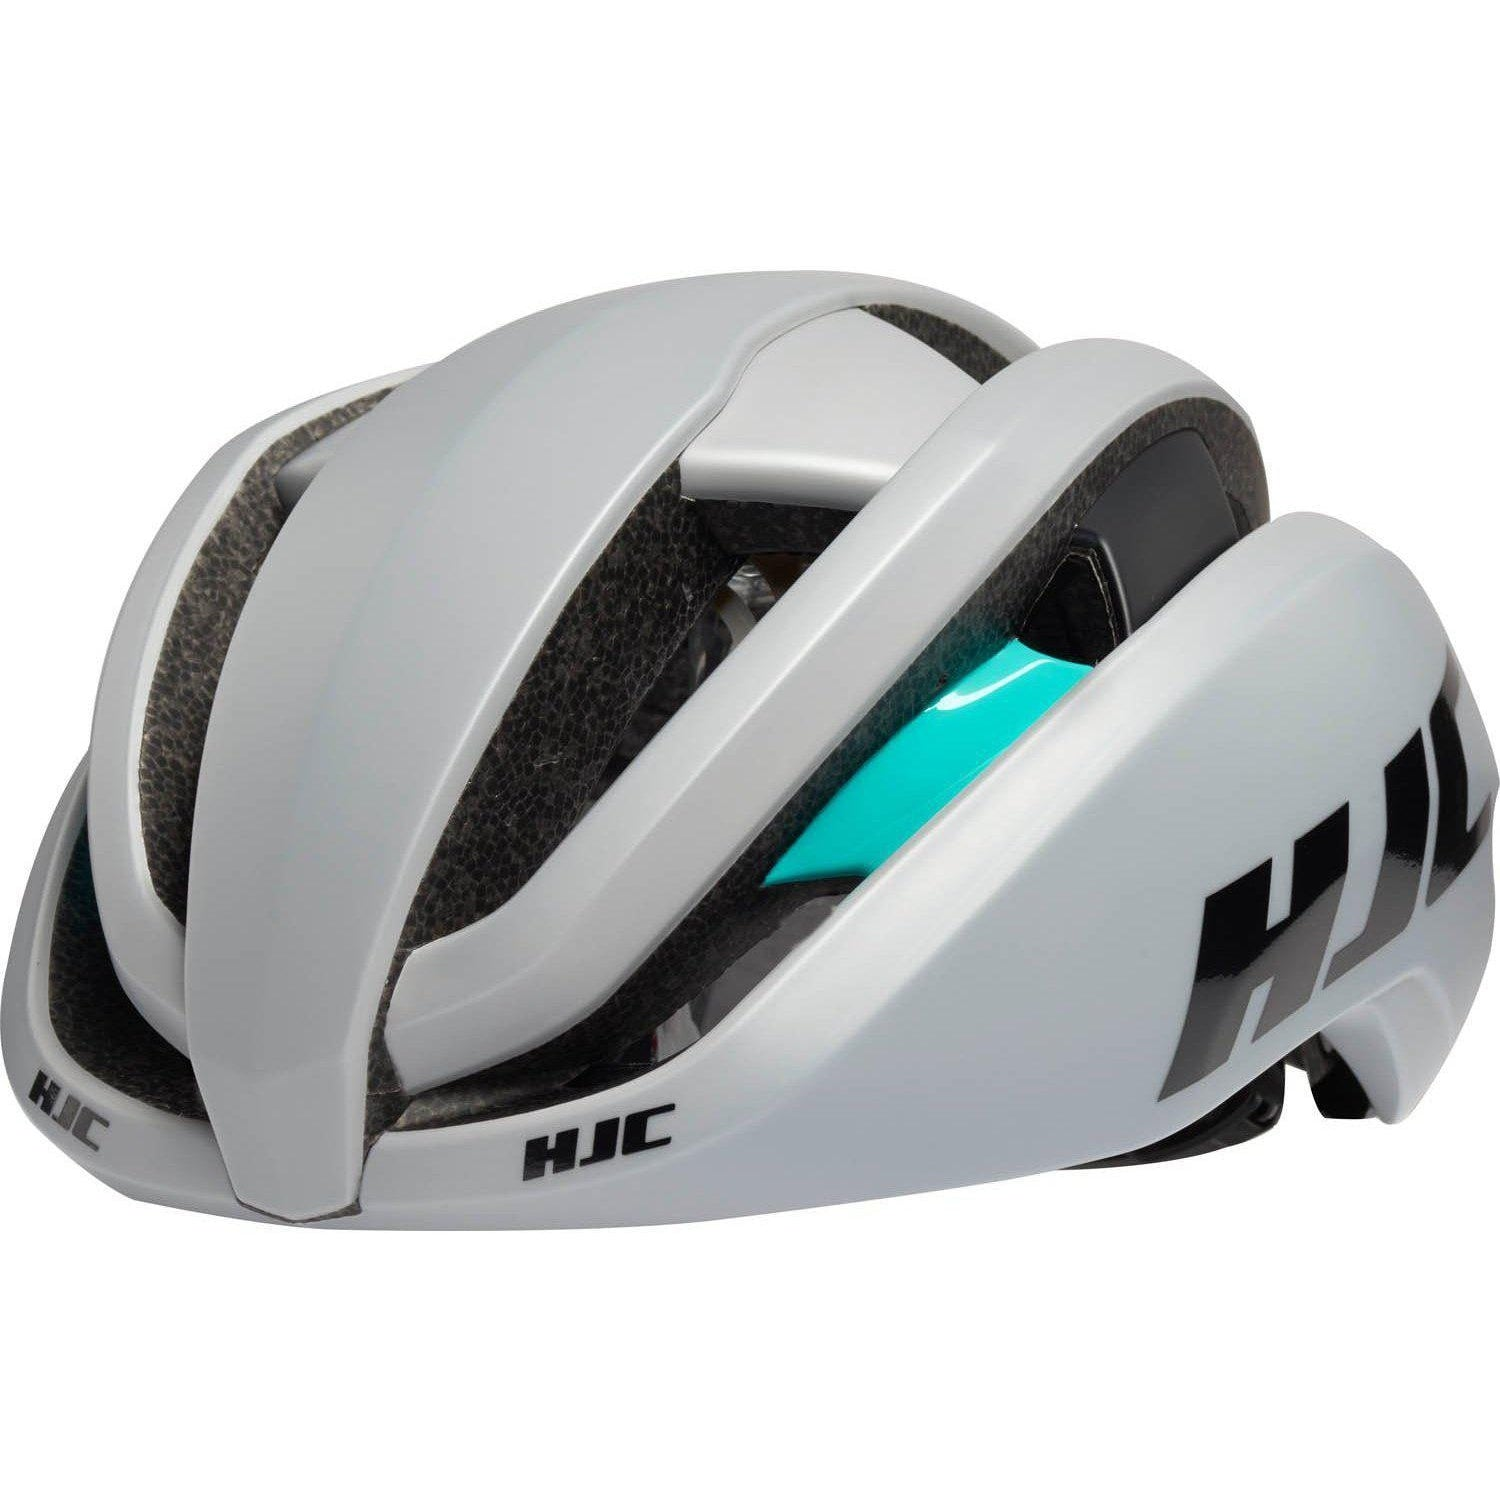 HJC-HJC Ibex 2.0 Road Cycling Helmet-Grey/Mint-S-HJC81242901-saddleback-elite-performance-cycling